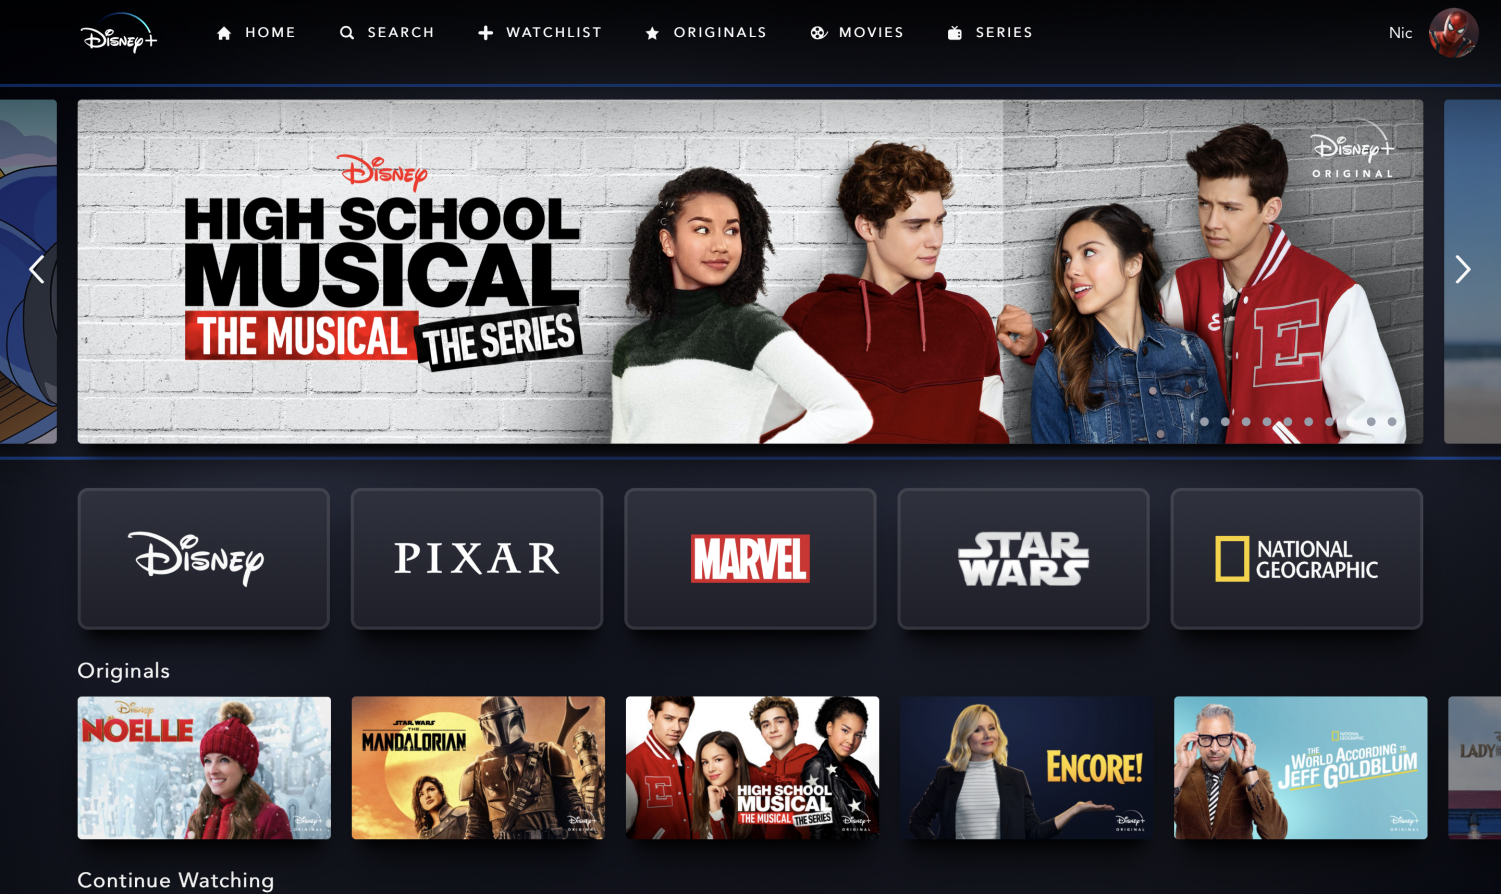 This is the interface users are presented with when browsing content on Disney+